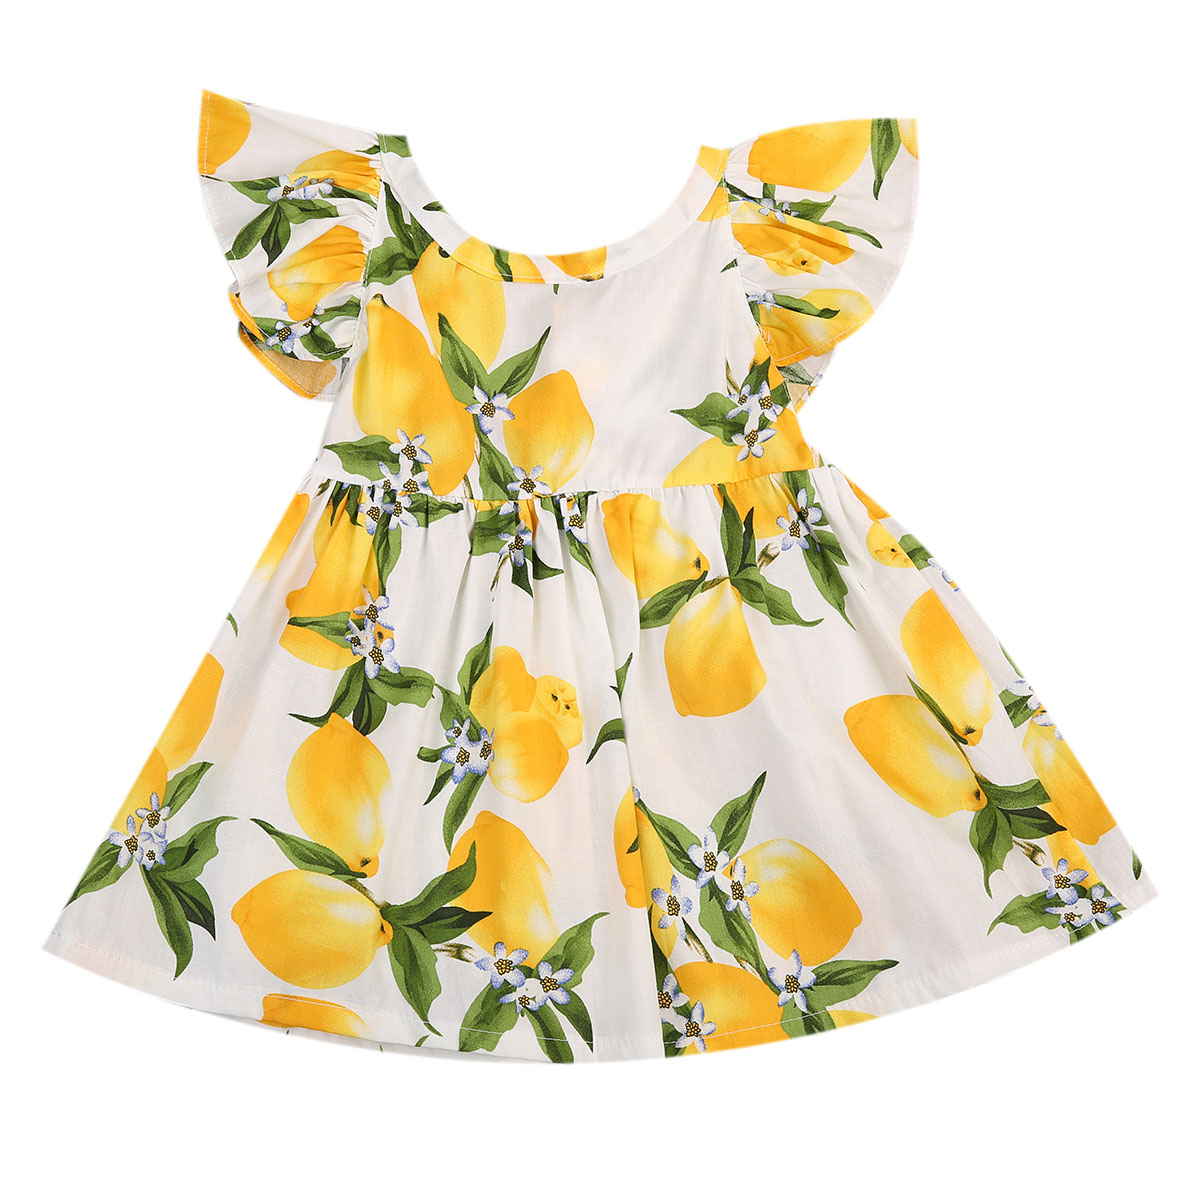 Pudcoco brand Kids Dress 2017 Summer Fly Sleeve Sundress Lemon Print Baby Girls Dresses Fashion Children Clothes Christmas Gifts kids dresses for girls children girl summer dress kids clothes ropa de ninas cotton lemon print yellow sundress girls dresses